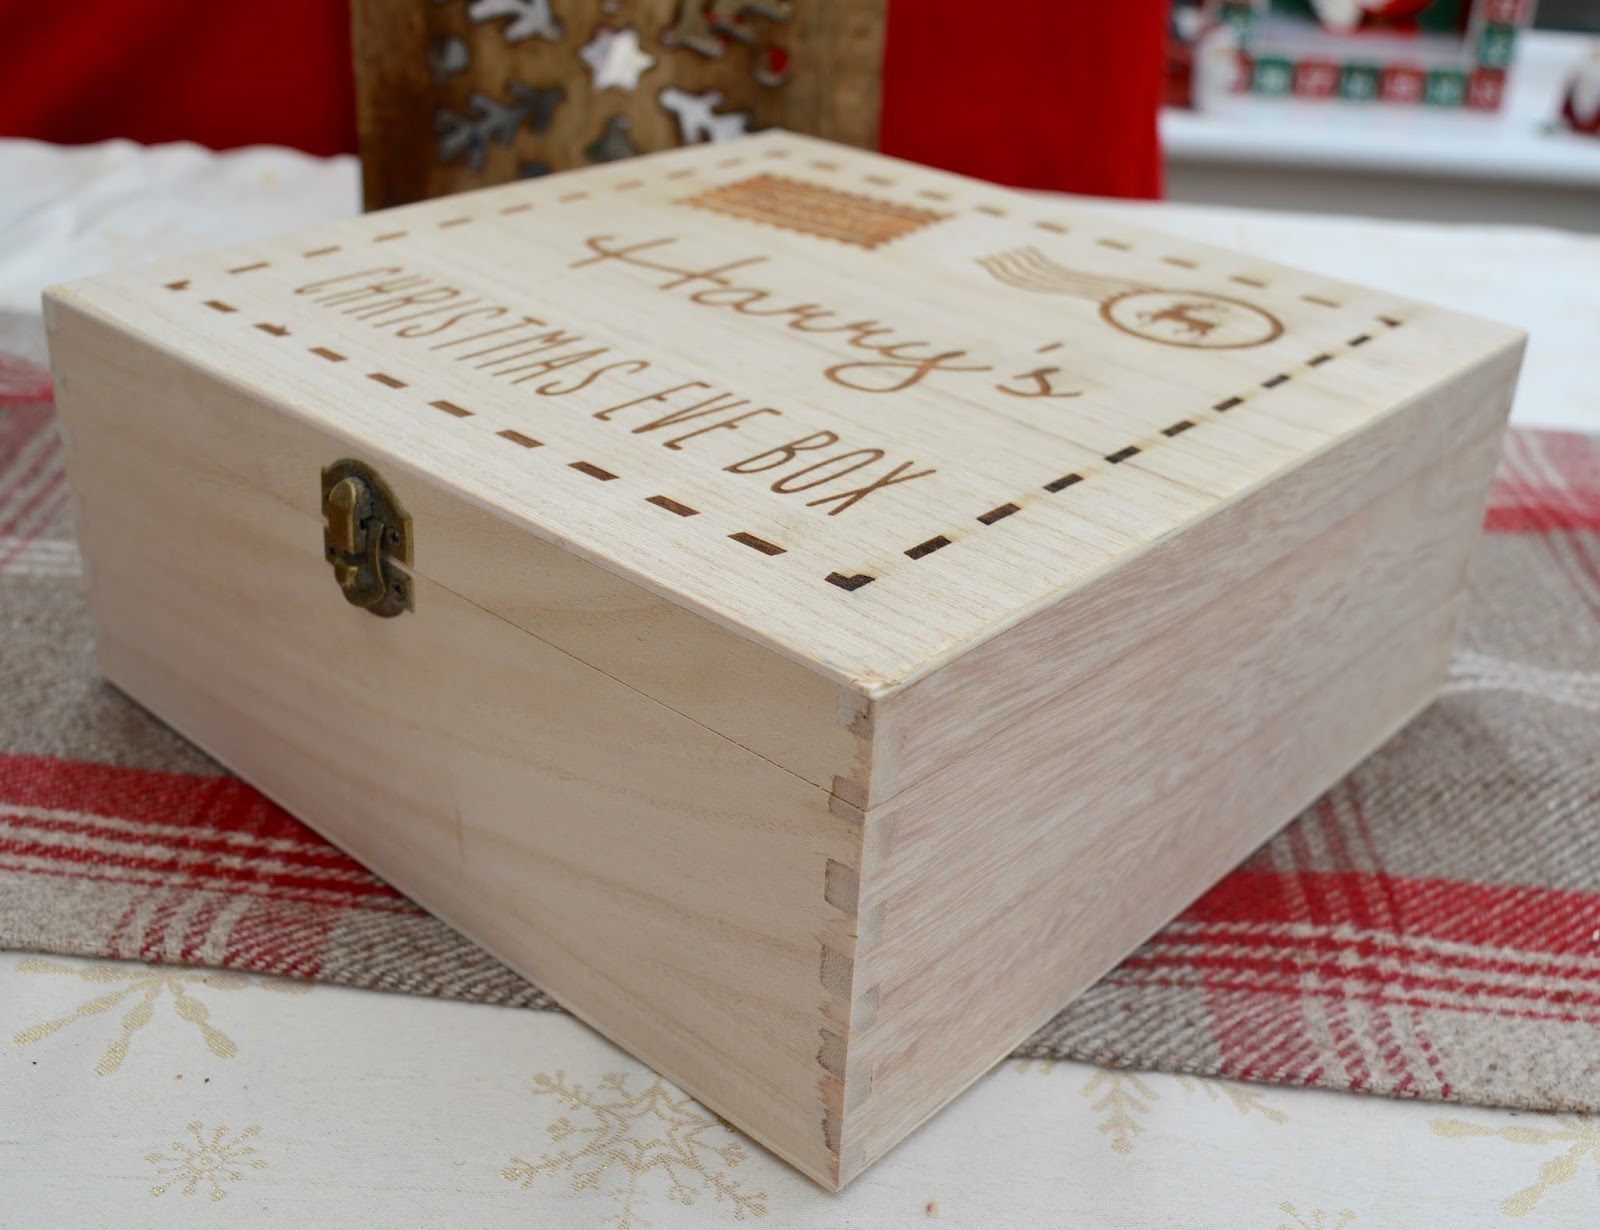 How to Create a Magical Personalised Christmas Eve Box with GettingPersonal.co.uk including ideas for what to put inside.  - high quality wooden box